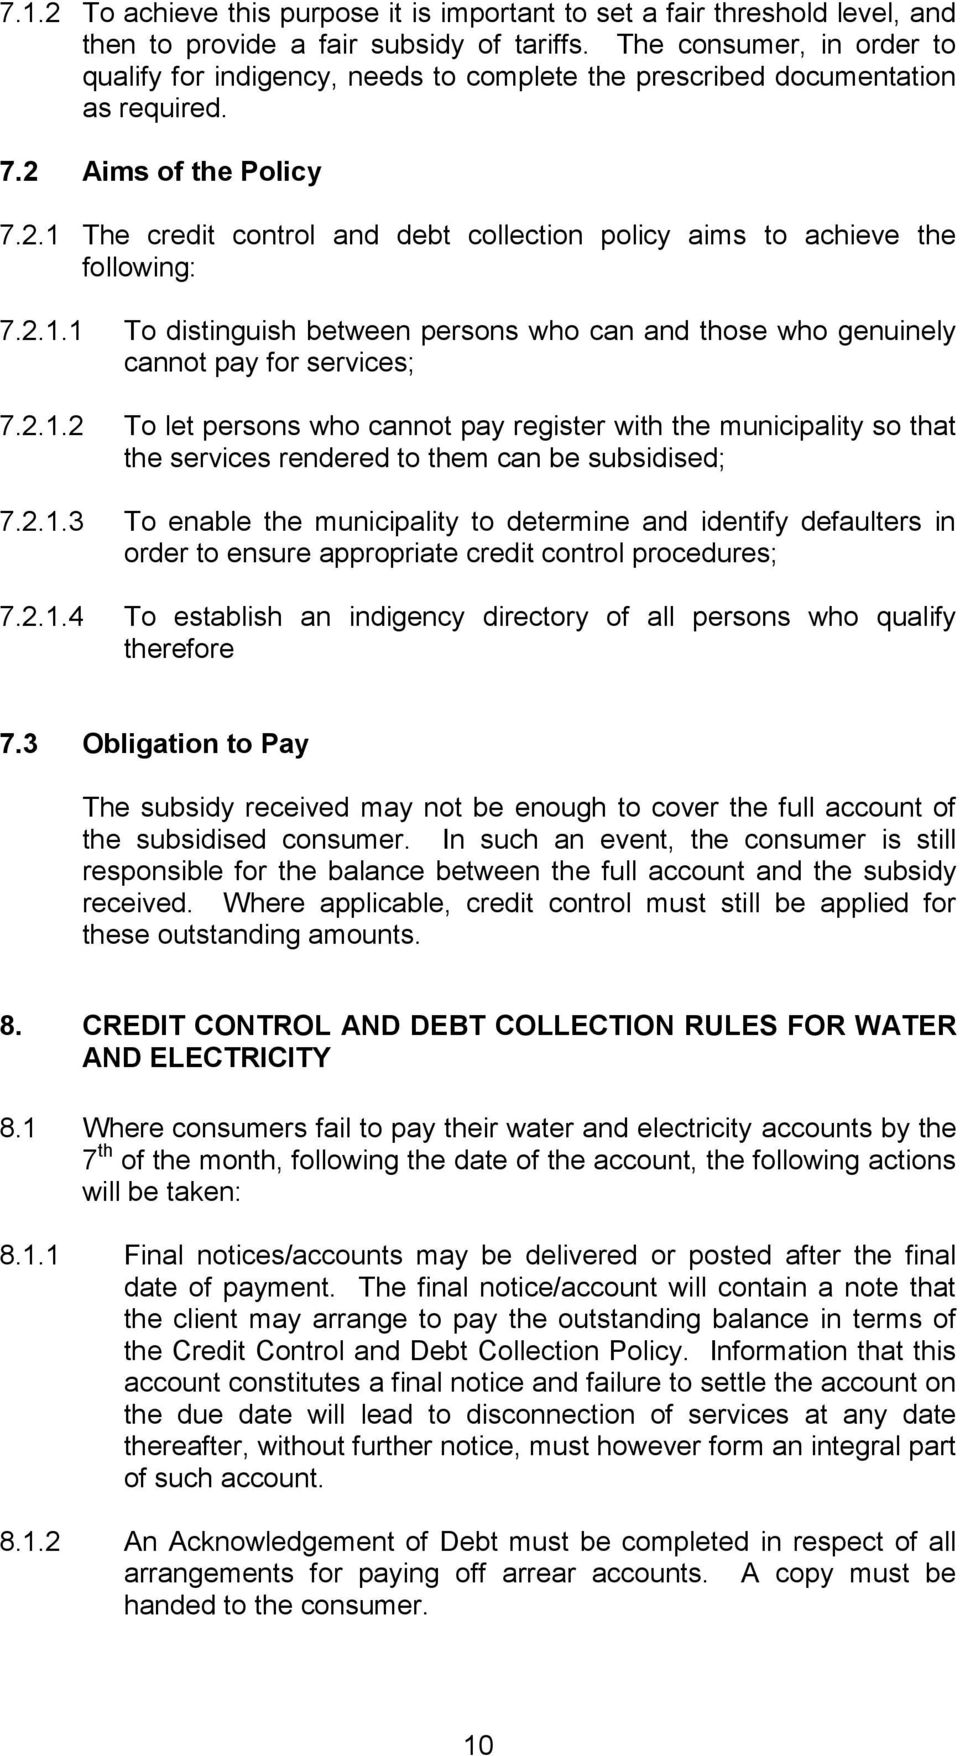 2.1.1 To distinguish between persons who can and those who genuinely cannot pay for services; 7.2.1.2 To let persons who cannot pay register with the municipality so that the services rendered to them can be subsidised; 7.